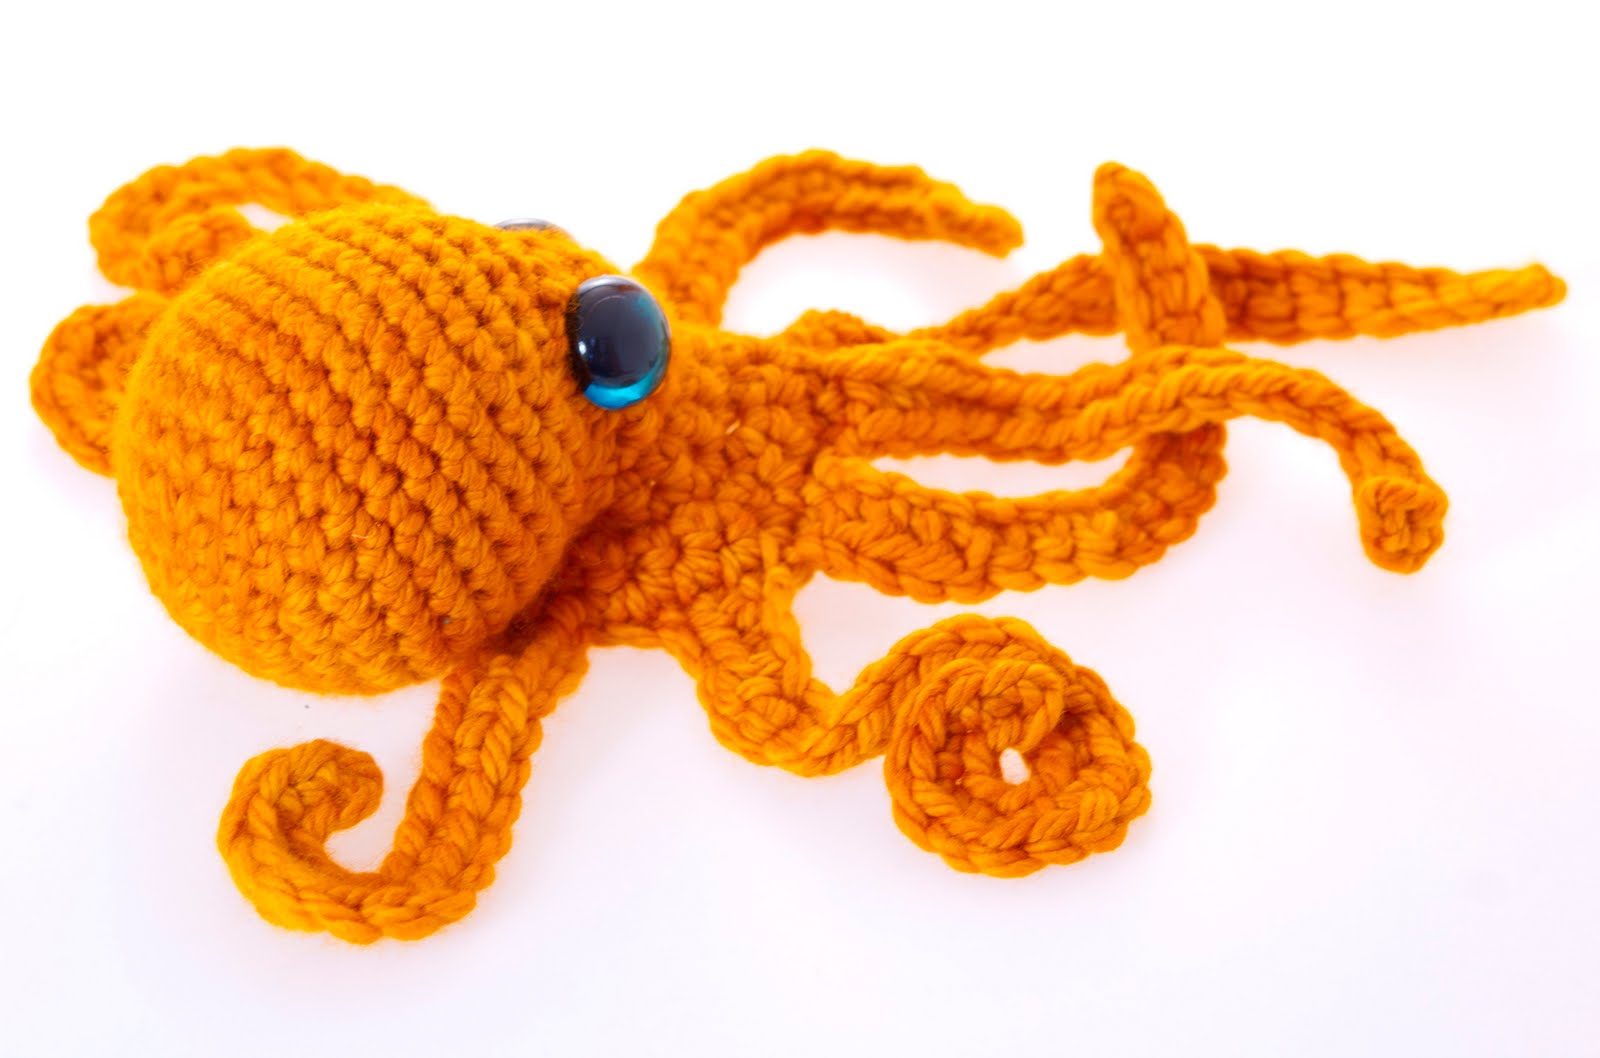 Ruby Submarine: Coming soon... the Octopus crochet pattern